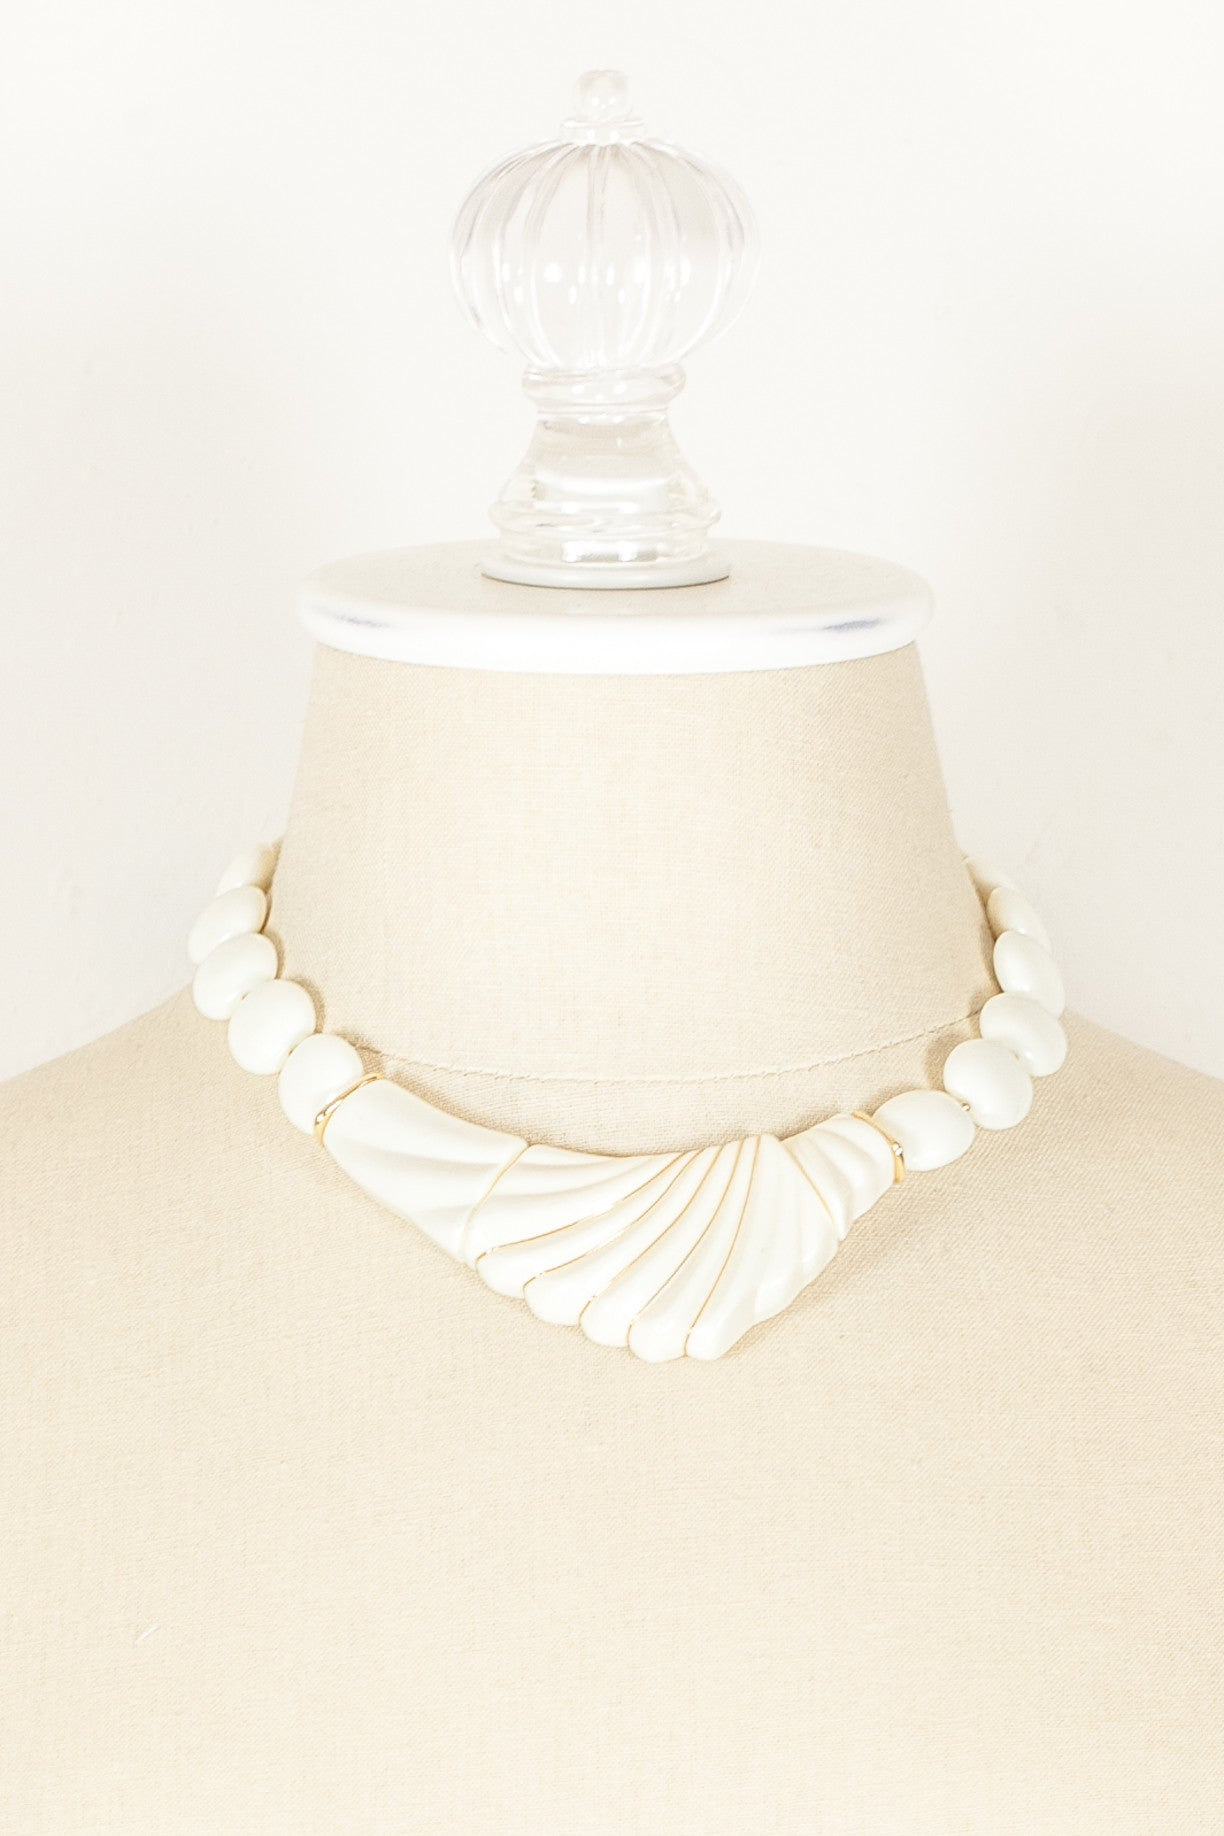 70's__Trifari__Textured V Necklace